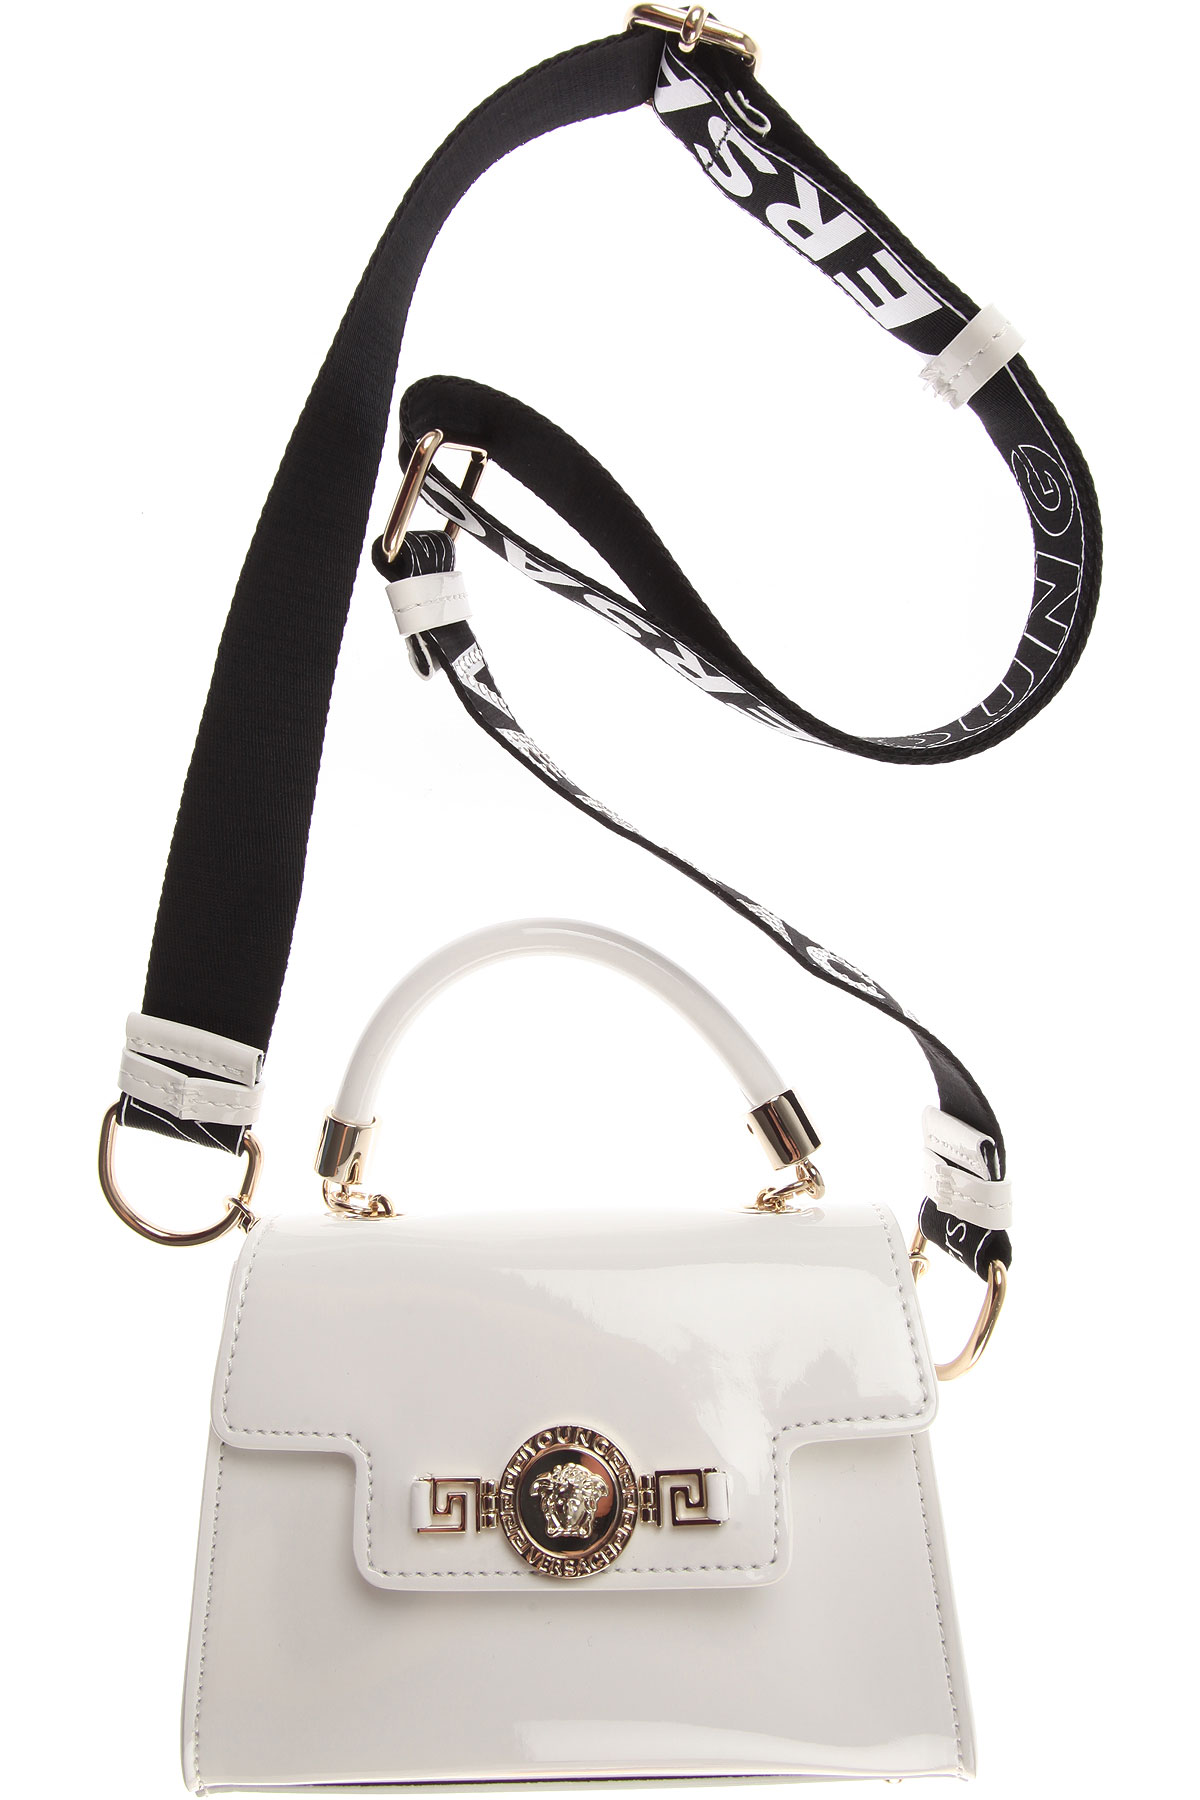 Image of Versace Baby Girls Handbag, Patent White, Calf Leather, 2017